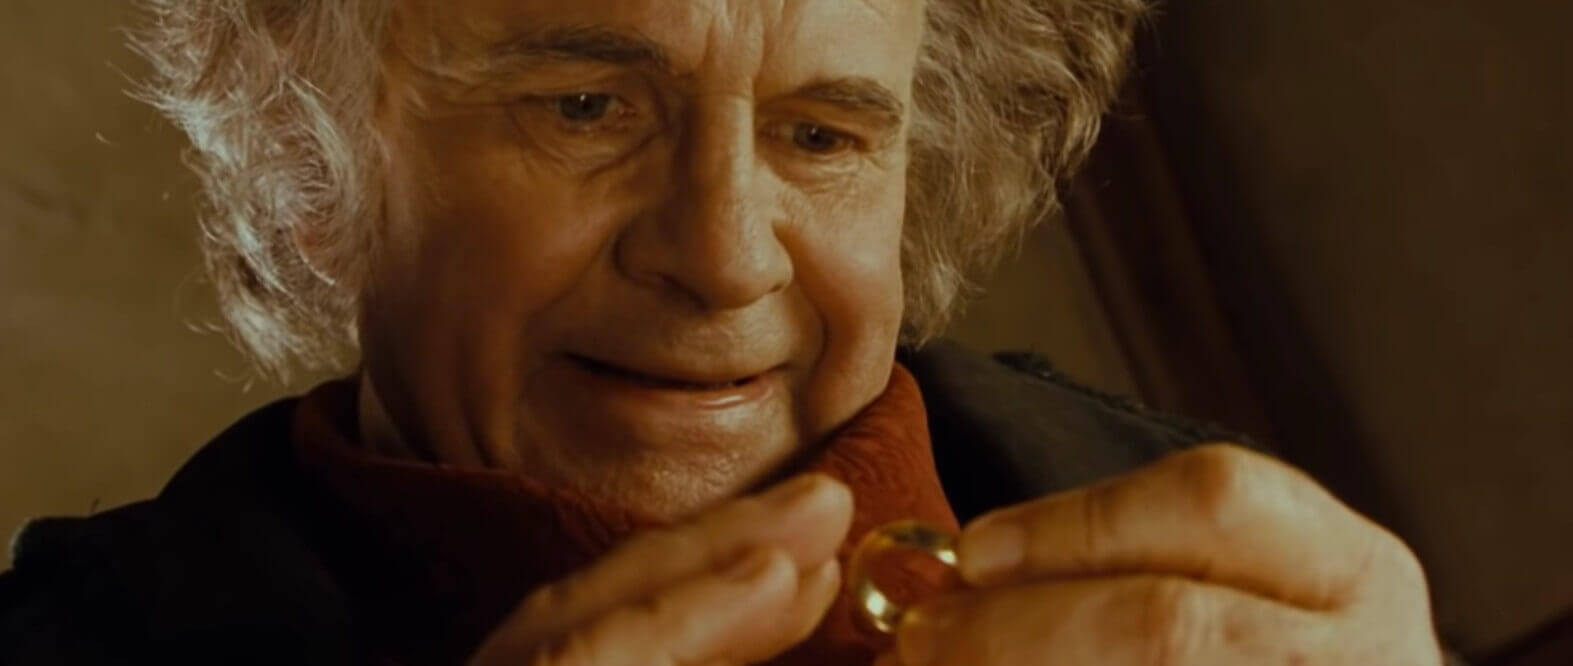 image showing bilbo baggins with ring from lord of the rings